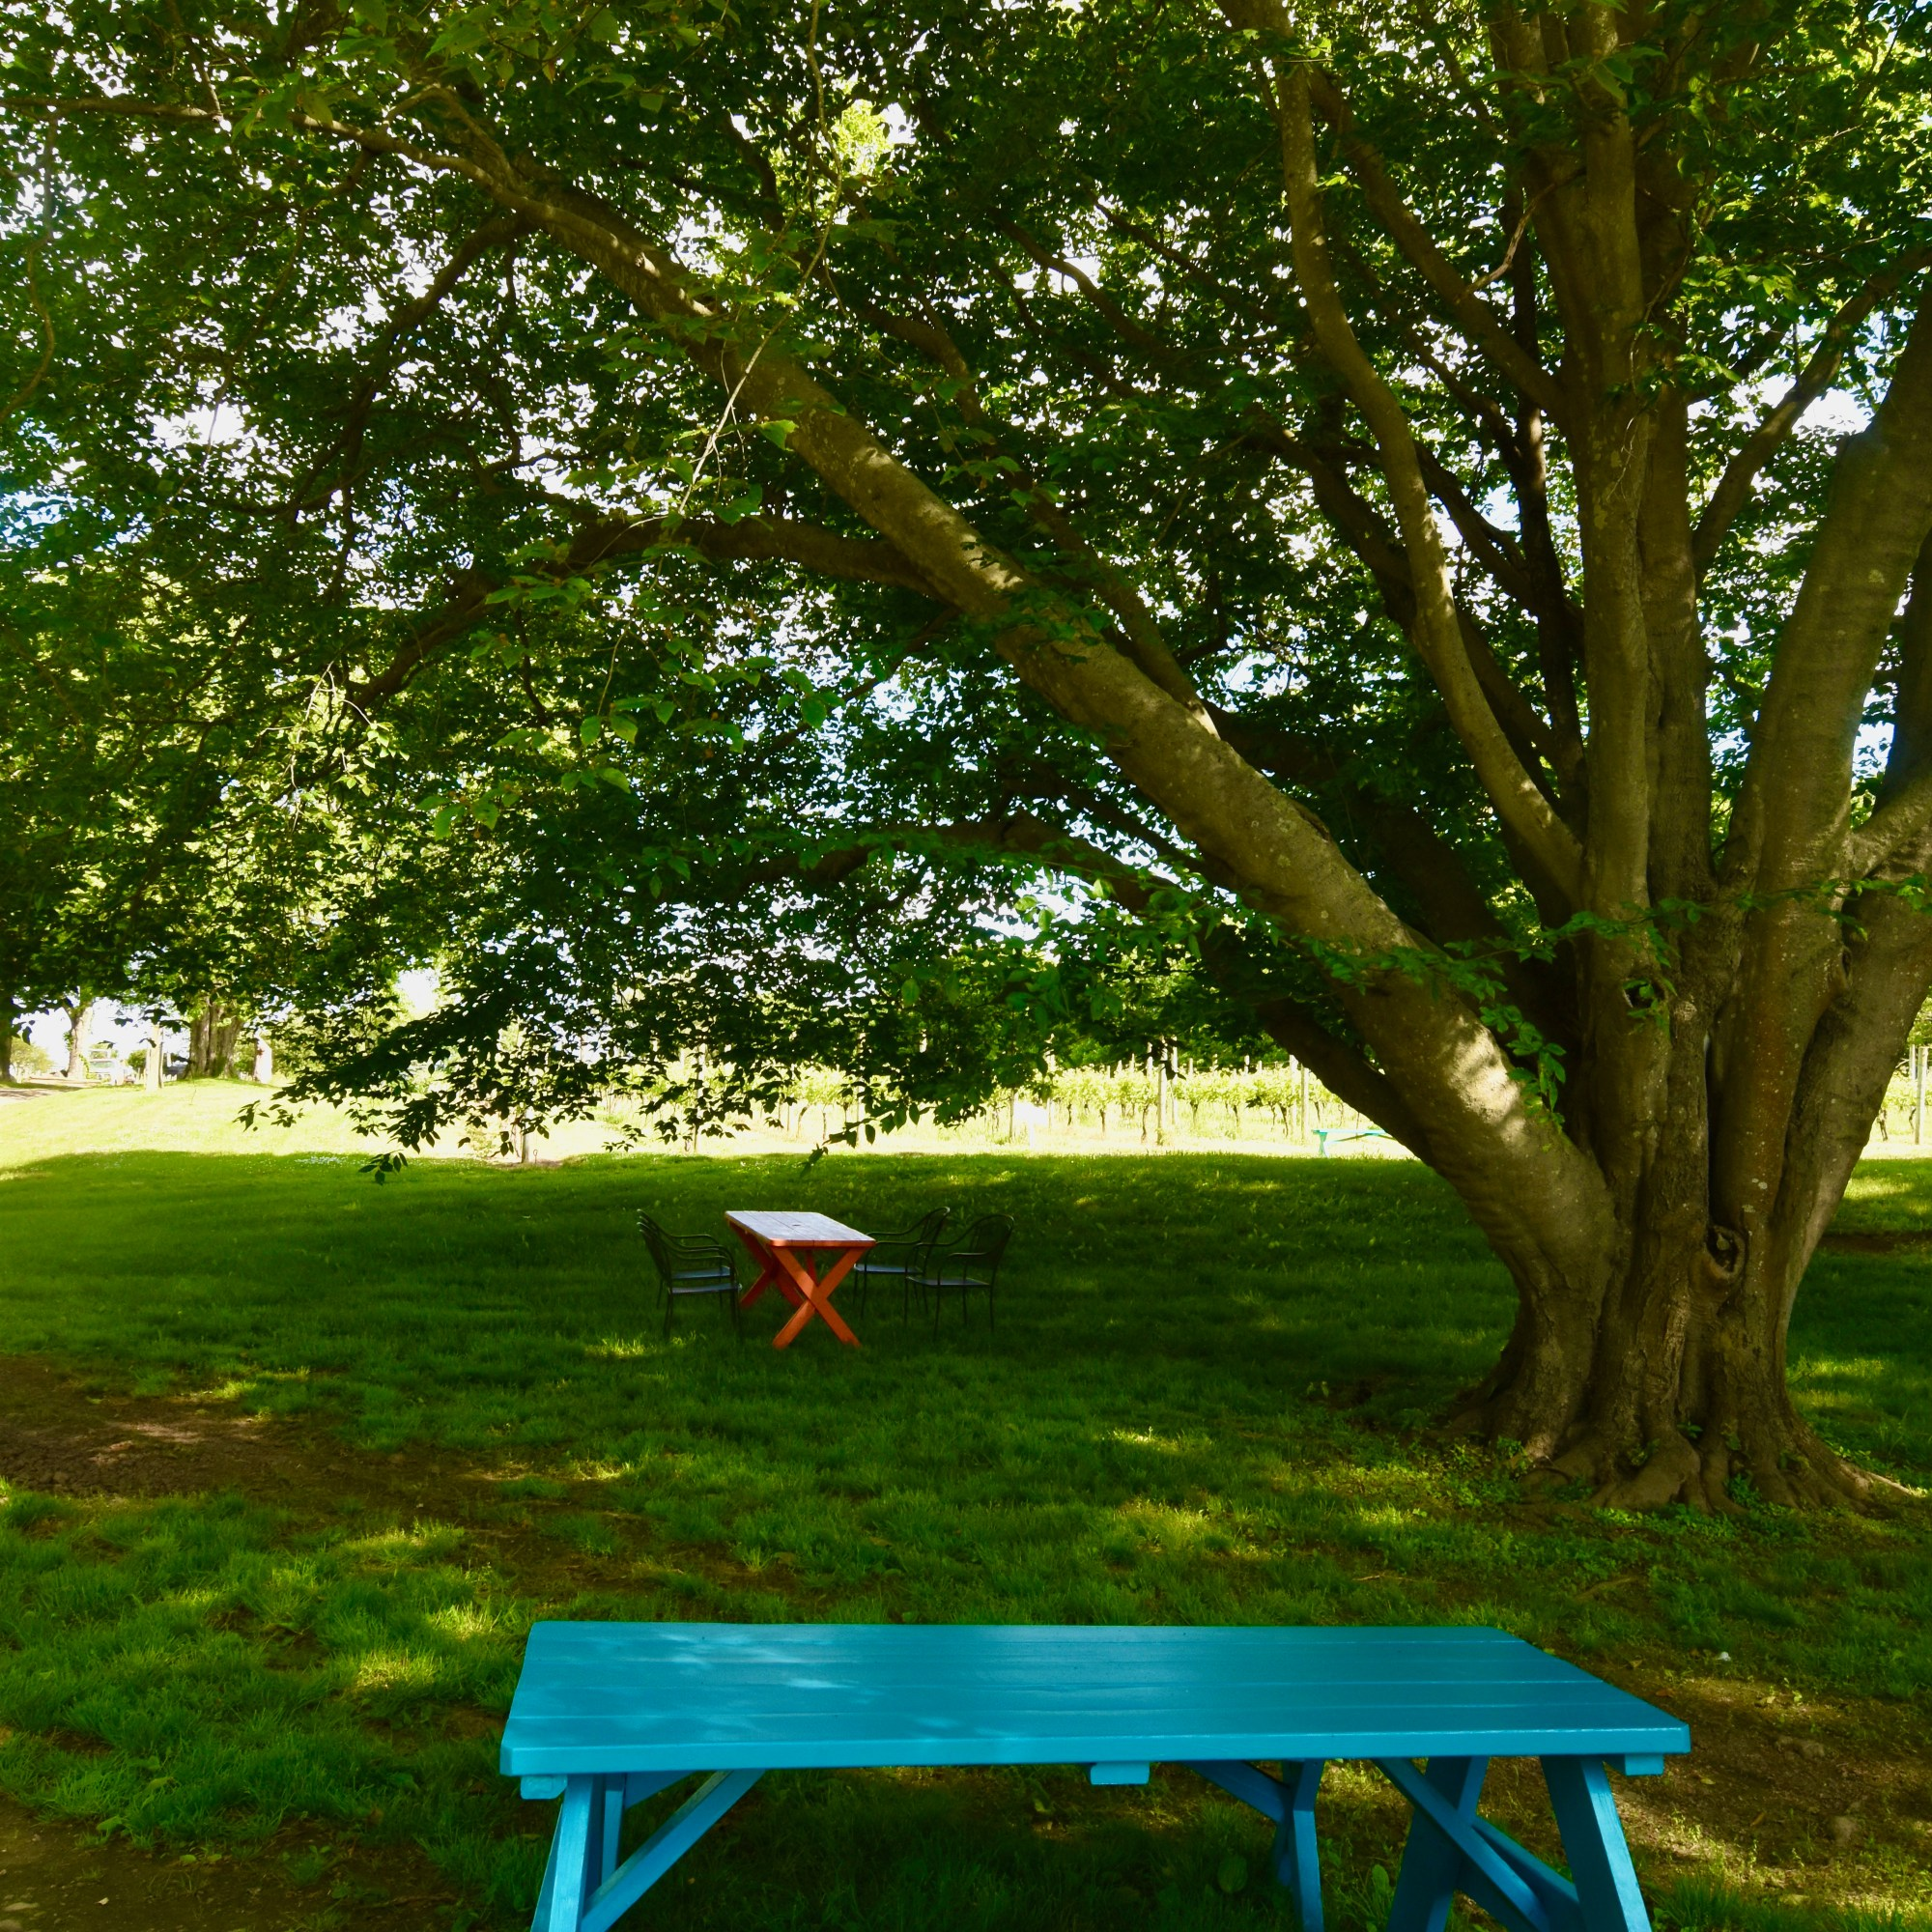 picnic tables in shade under trees